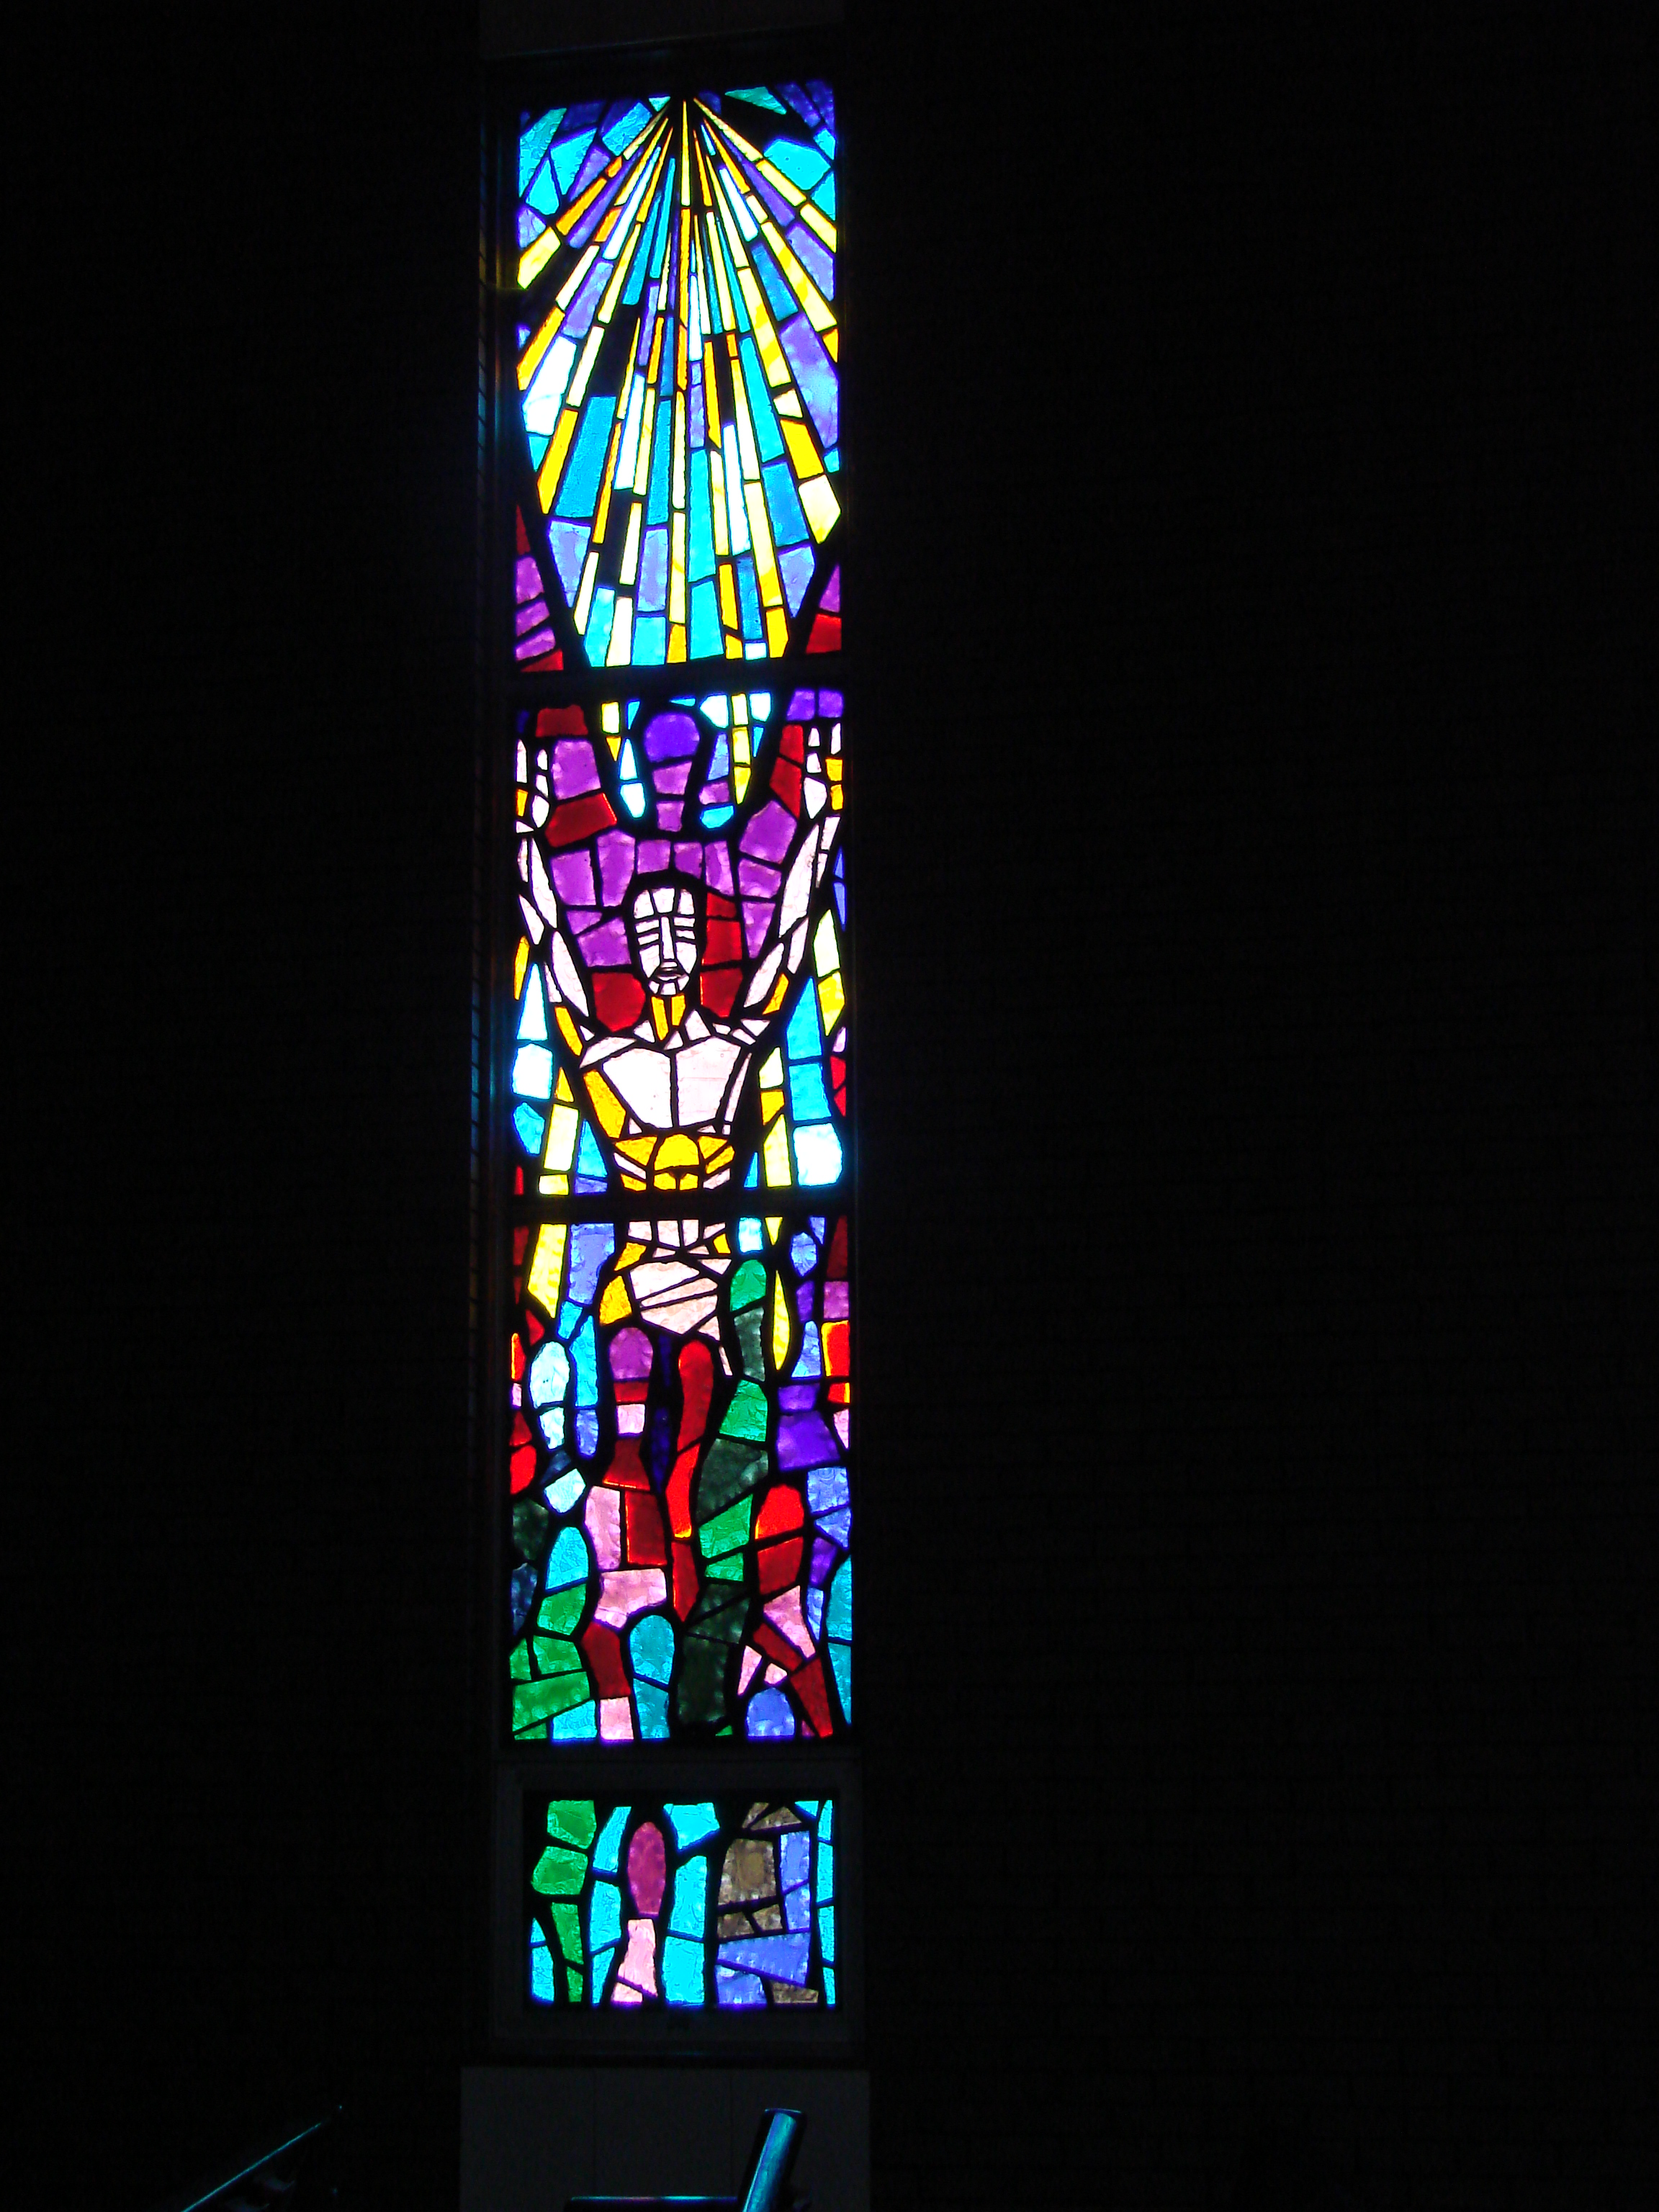 HUMANKIND WINDOW - The first long window was designed to symbolize how God's message works through HUMANKIND.  In the lower part is a human figure reaching upward.  God speaks to us through our bodies.  Immediately above and behind this figure is another figure with a color purple.  This symbolizes the mind.  Above these two figures are the artistic lines to symbolize Spirit, descending upon humankind.  This window's theme was chosen to remind us that the messages we get during worship reach us through body, mind, and spirit.